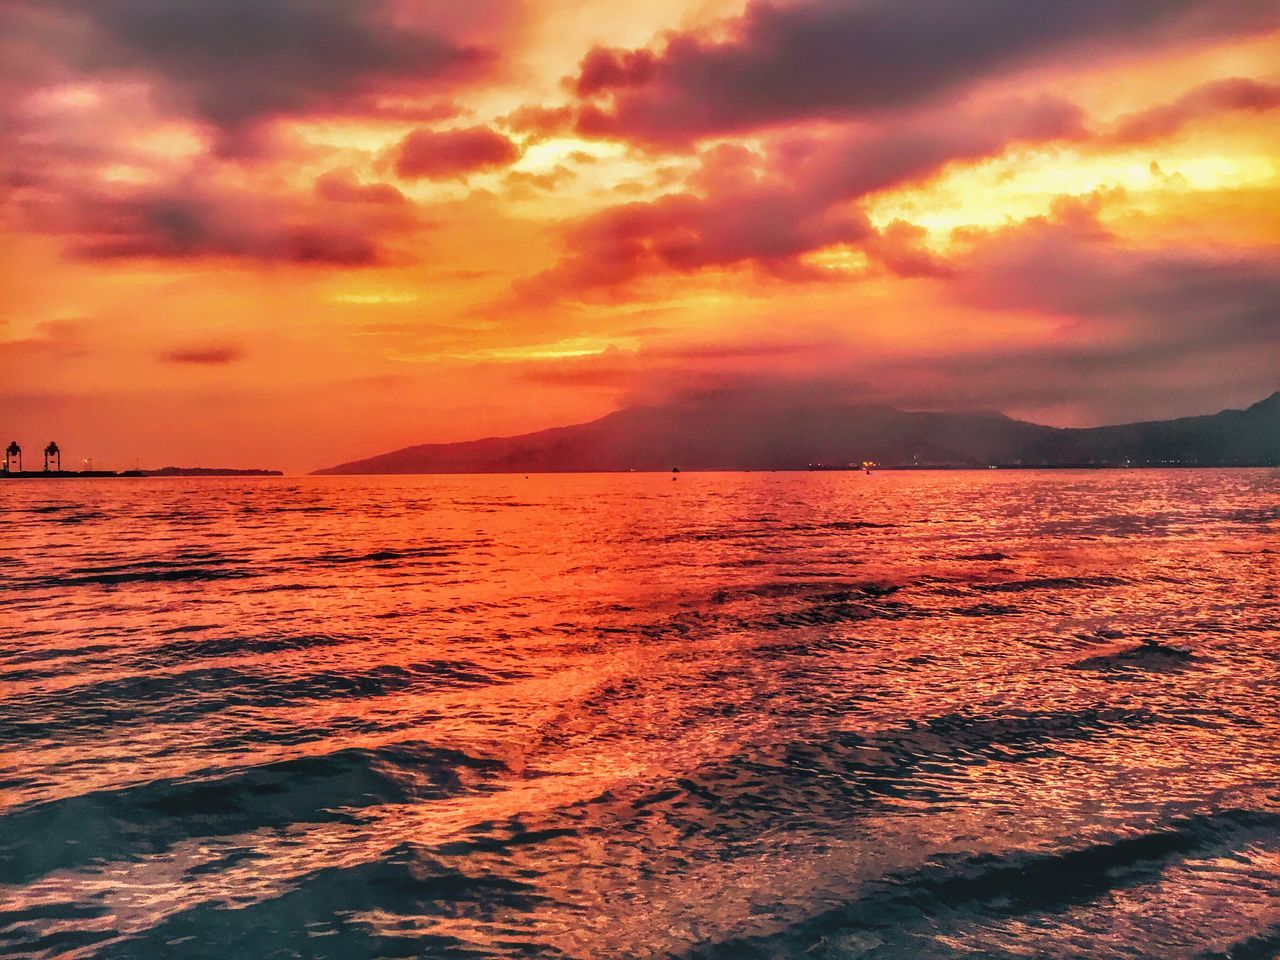 Subic sunset Eyeem Philippines EyeEm Nature Lover TravelPhilippines Beauty In Nature Sunset Sea Tranquility Water Nature Scenics Sky Tranquil Scene No People Dramatic Sky Outdoors Cloud - Sky Horizon Over Water Day